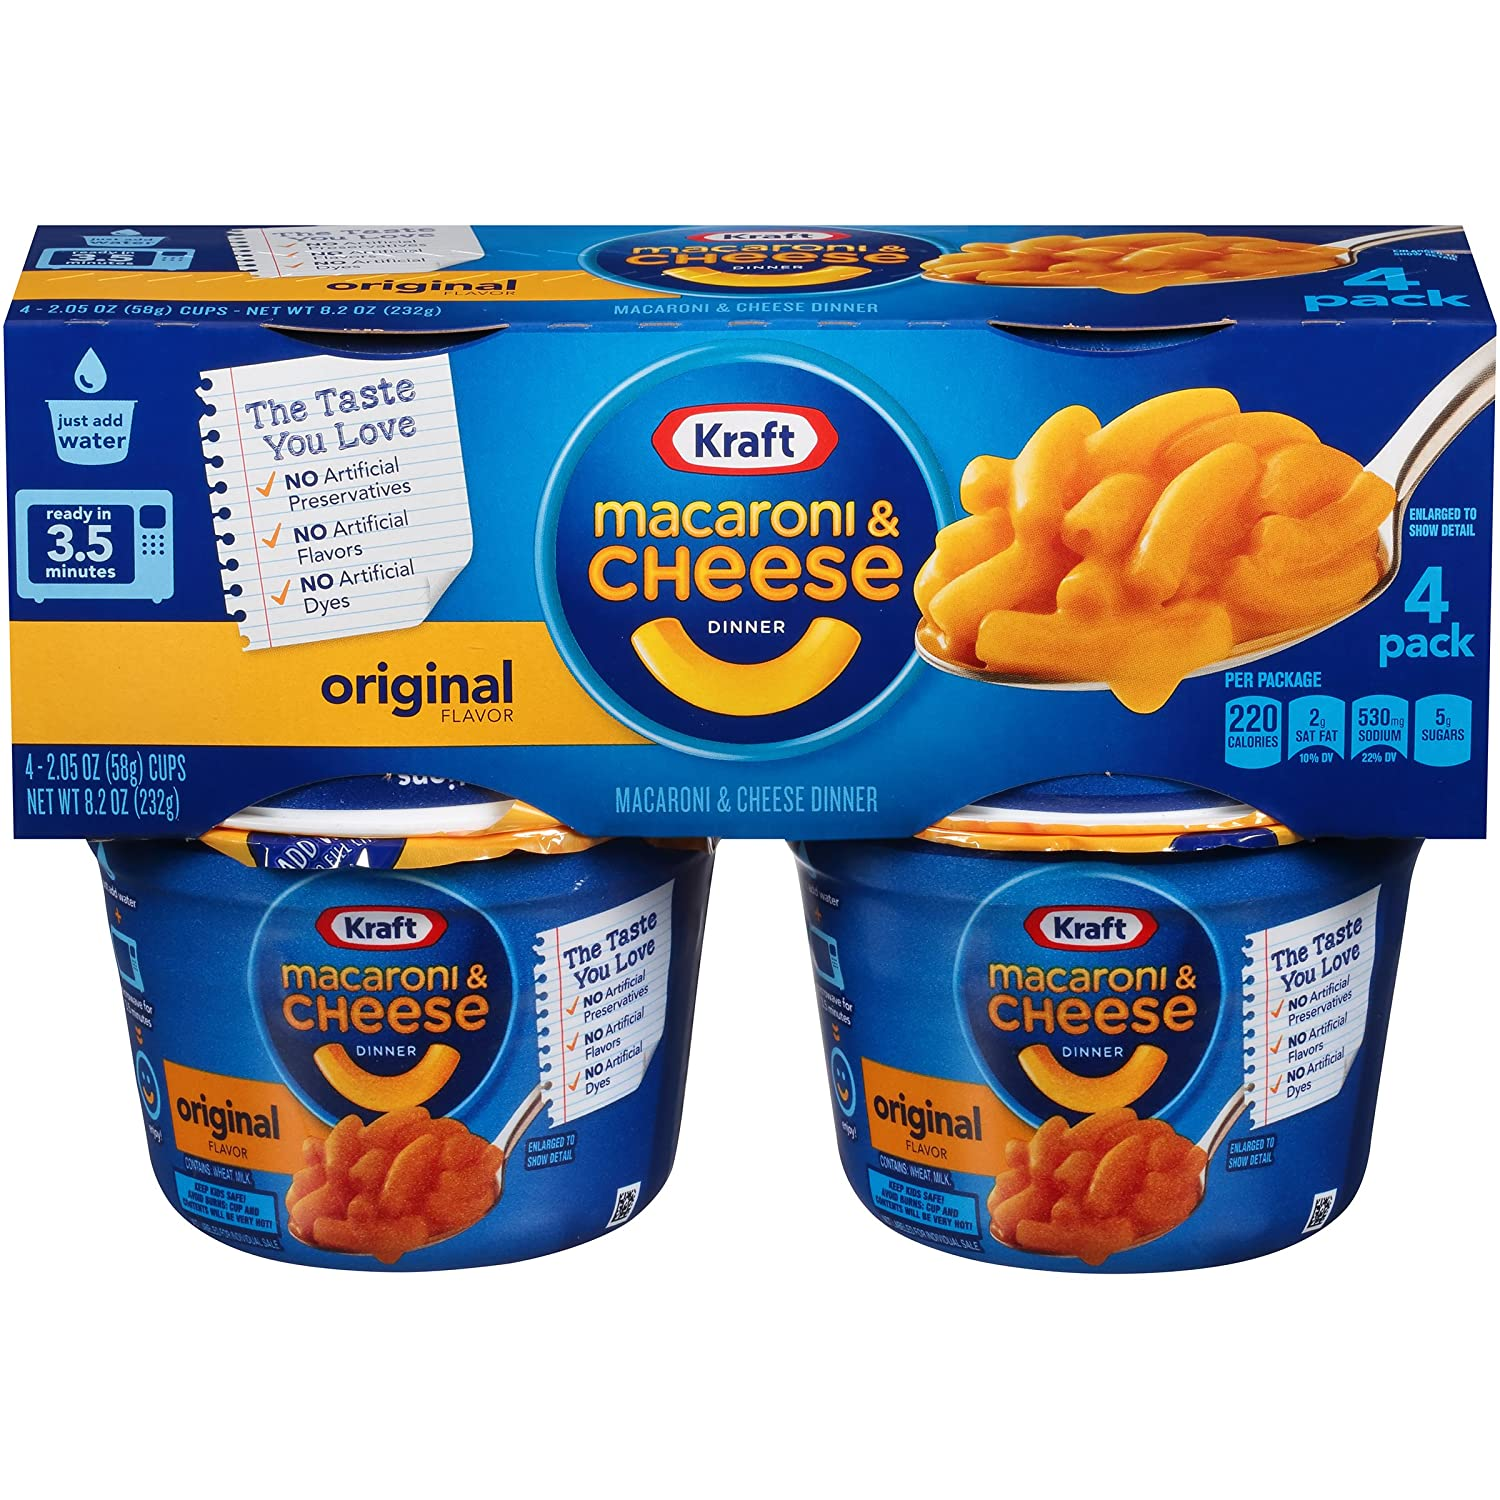 Kraft Easy Mac Original Flavor Macaroni and Cheese, 4 ct - 8.2 oz Package (Pack of 6)